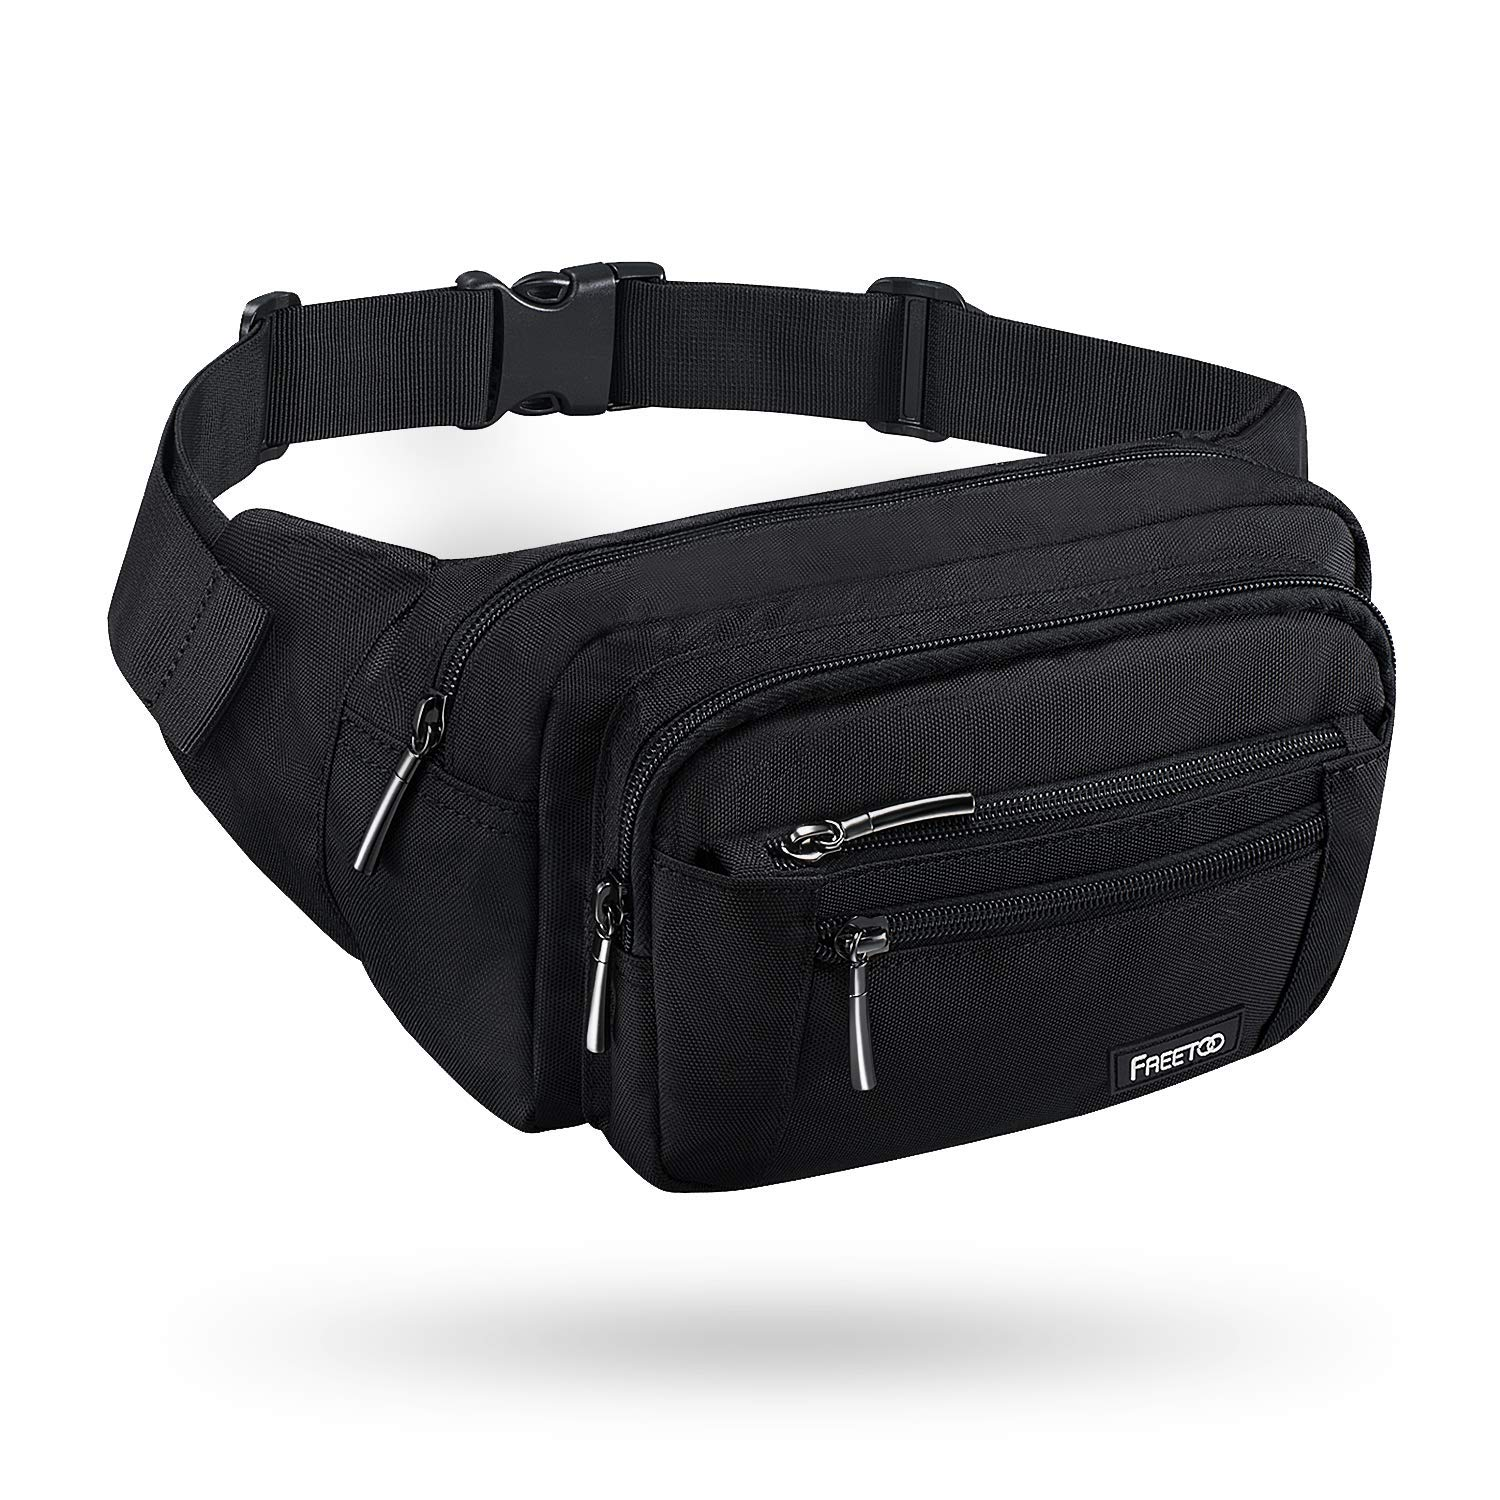 65e60d159e2 FREETOO Waist Pack Bag Fanny Pack for Men&Women Hip Bum Bag with Adjustable  Strap for Outdoors Workout Traveling Casual Running Hiking Cycling